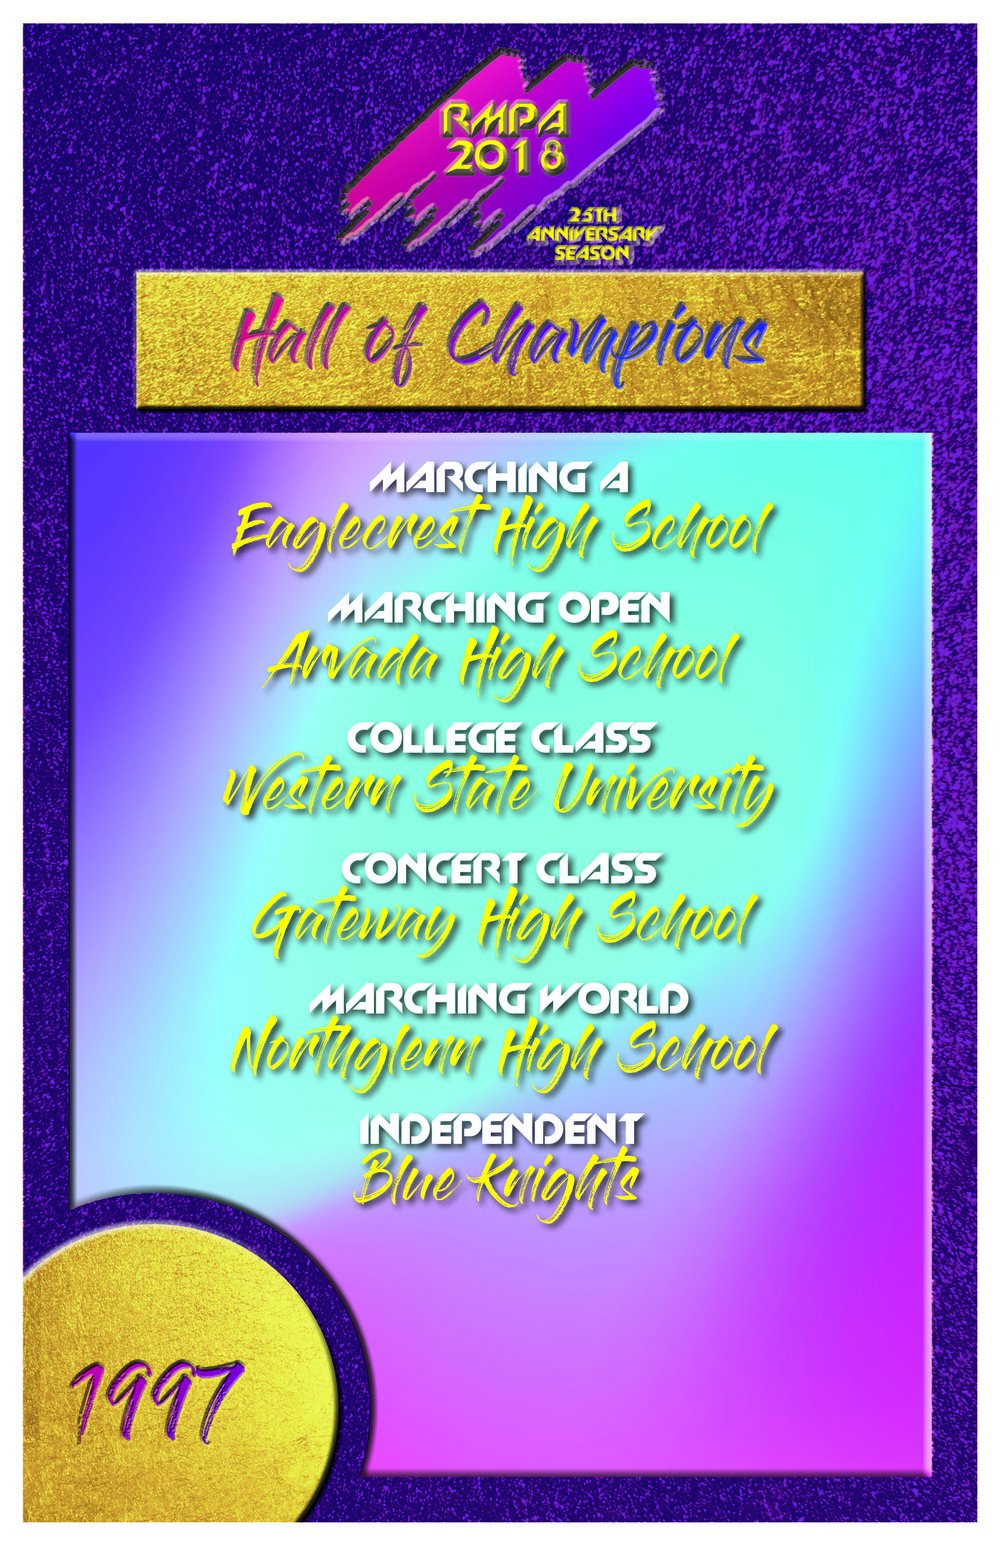 Hall of Champions Posters_Page_05.jpg